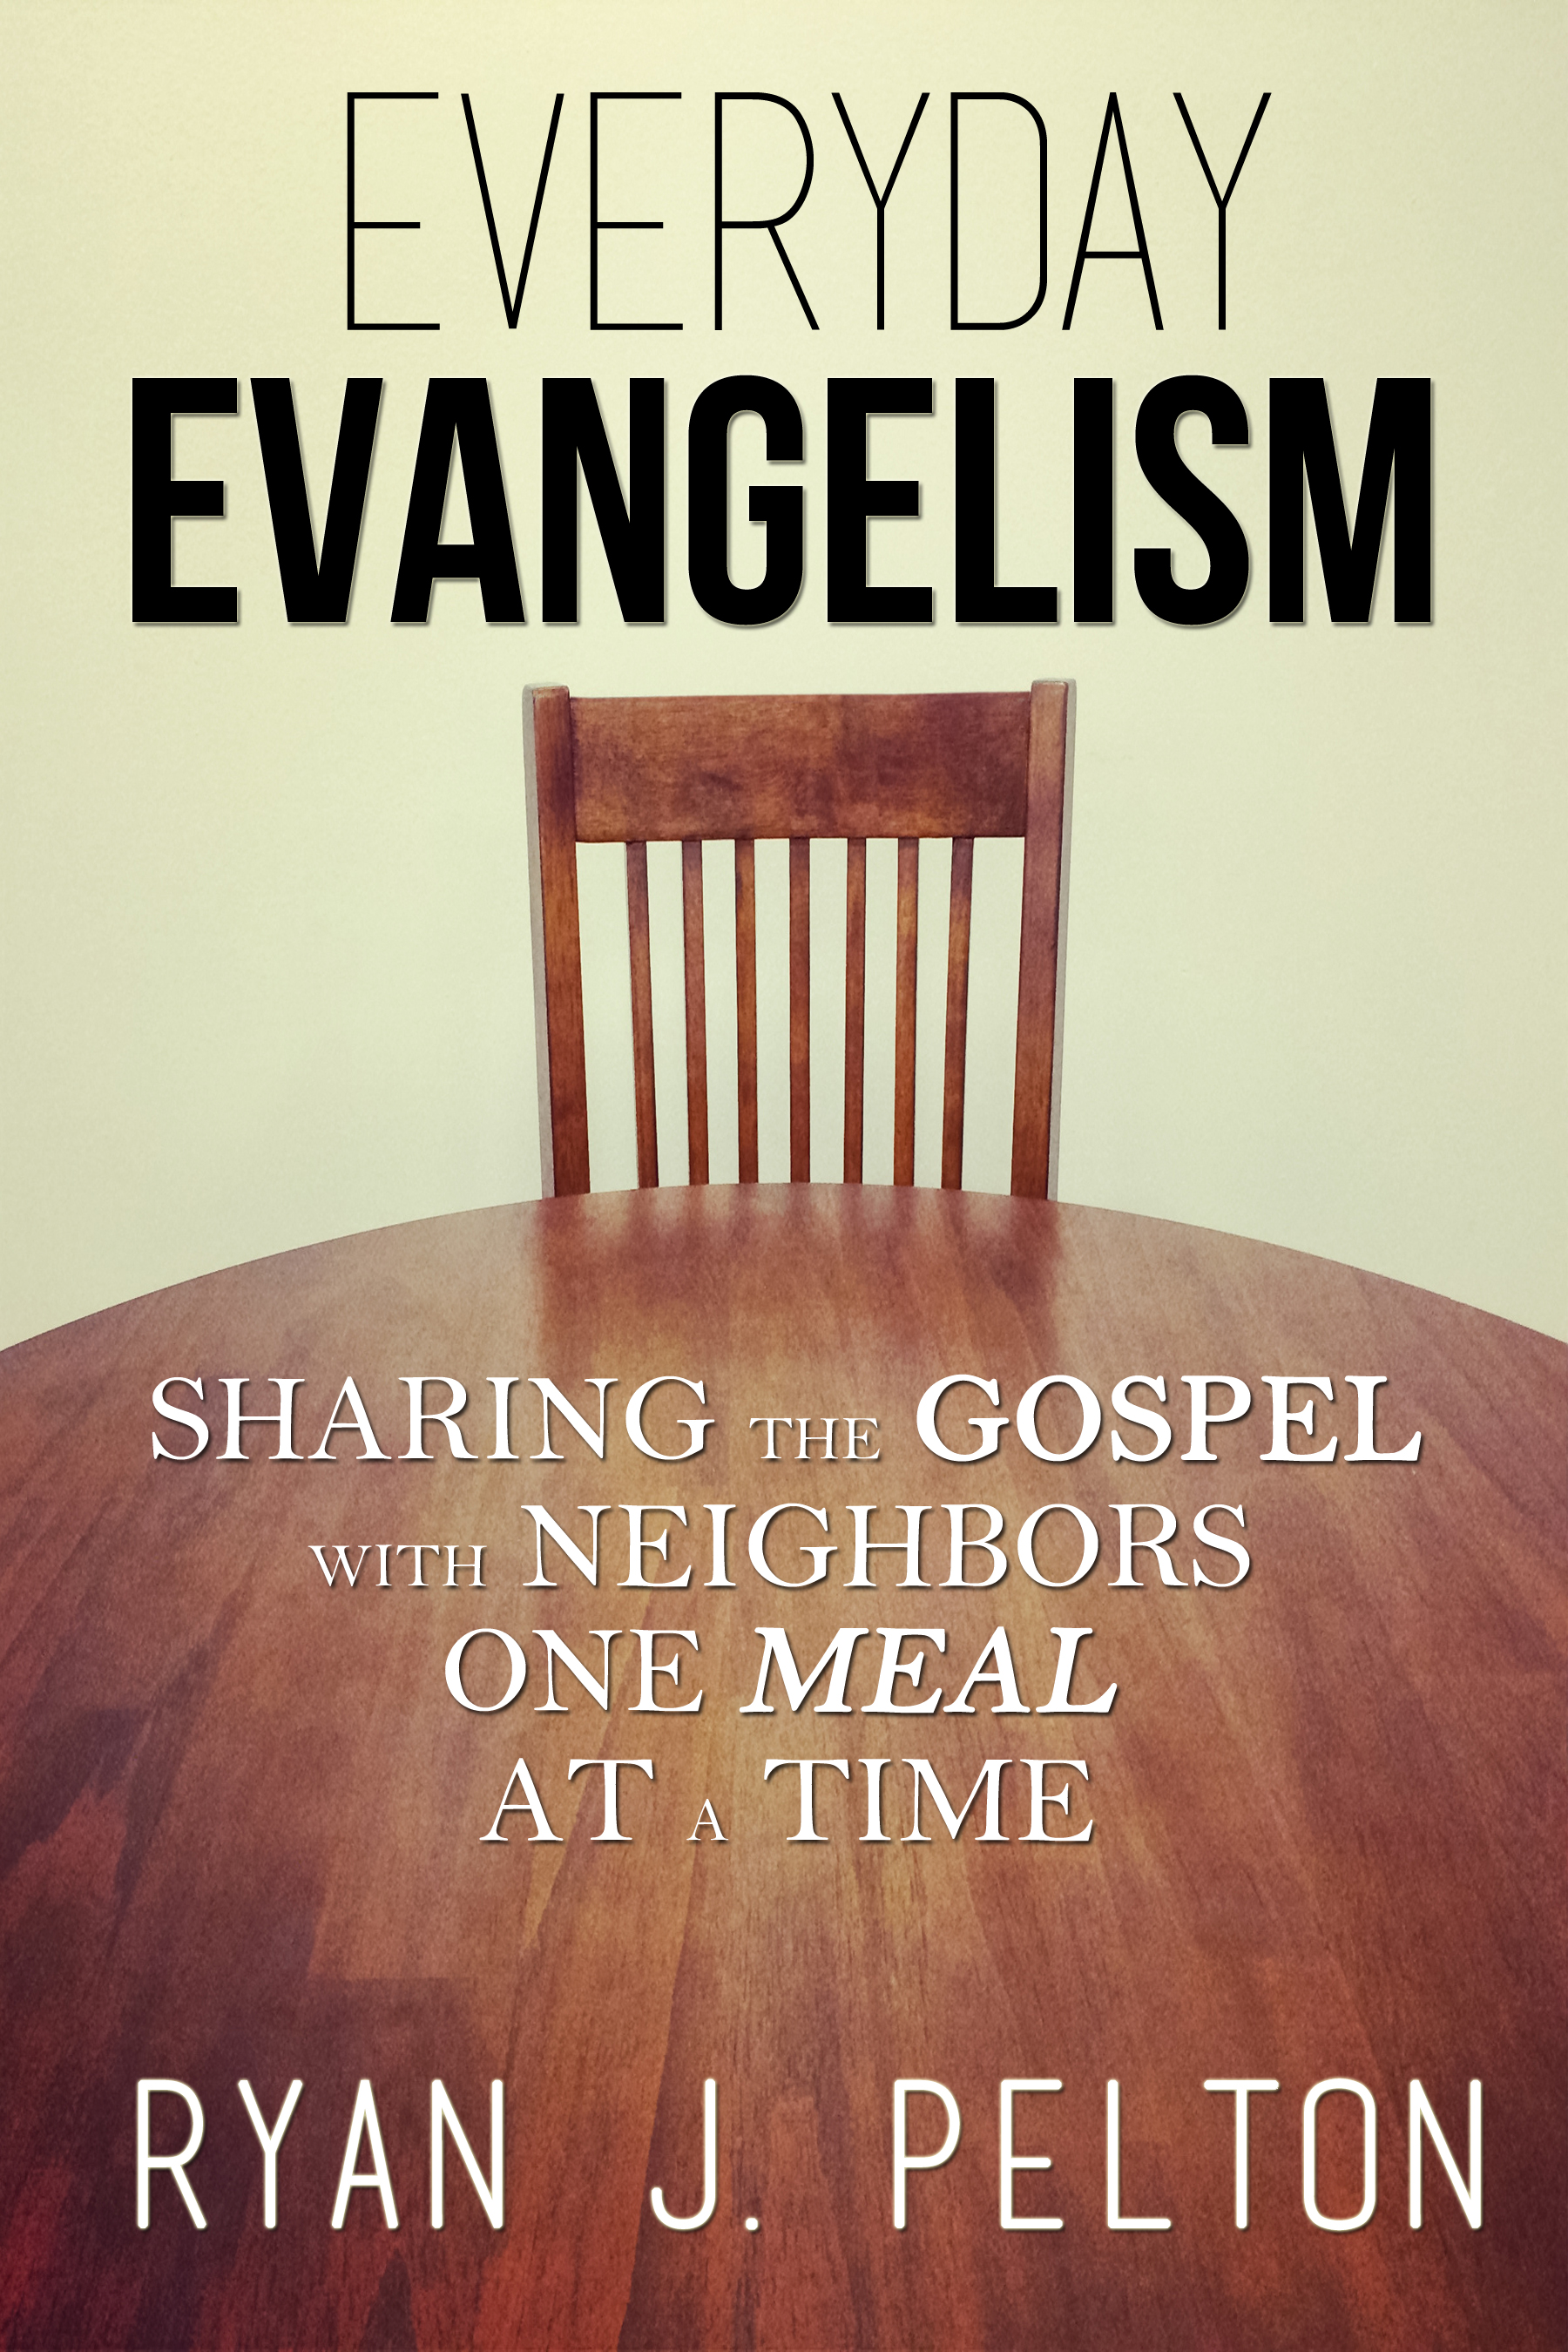 EverydayEvangelismCover(kindle).jpg